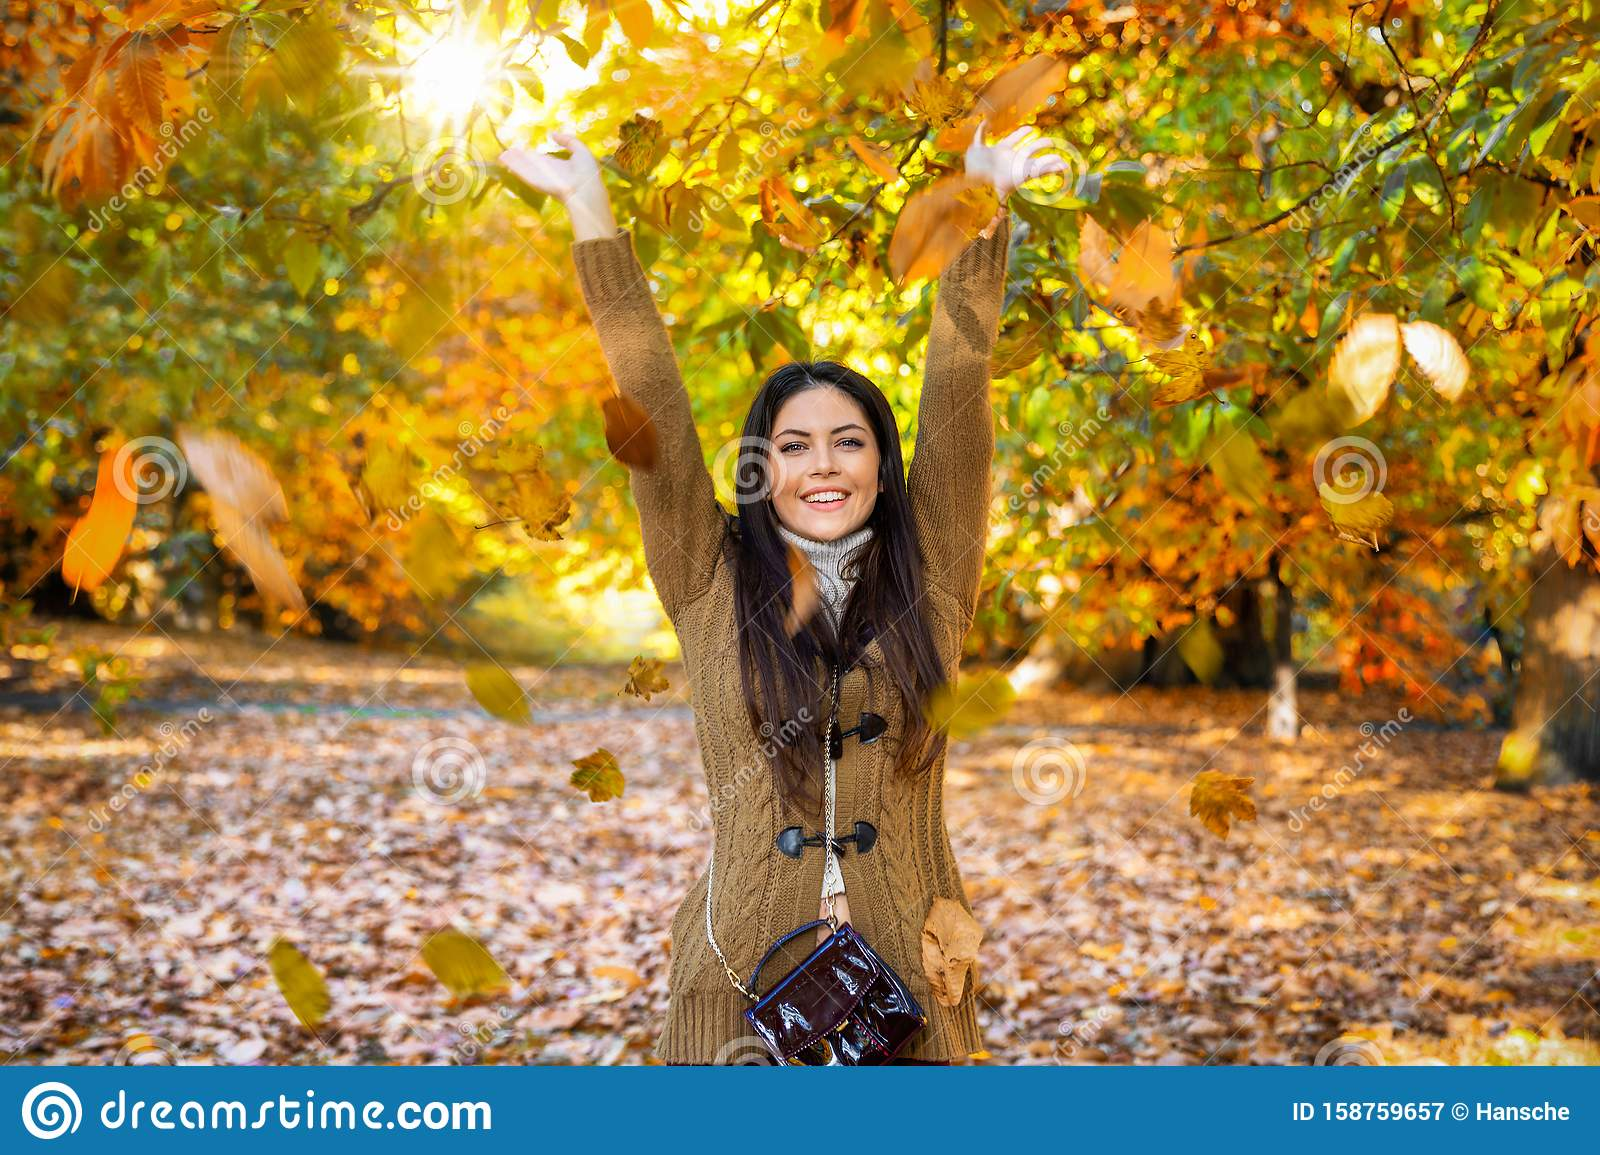 Woman in a park during golden autumn time